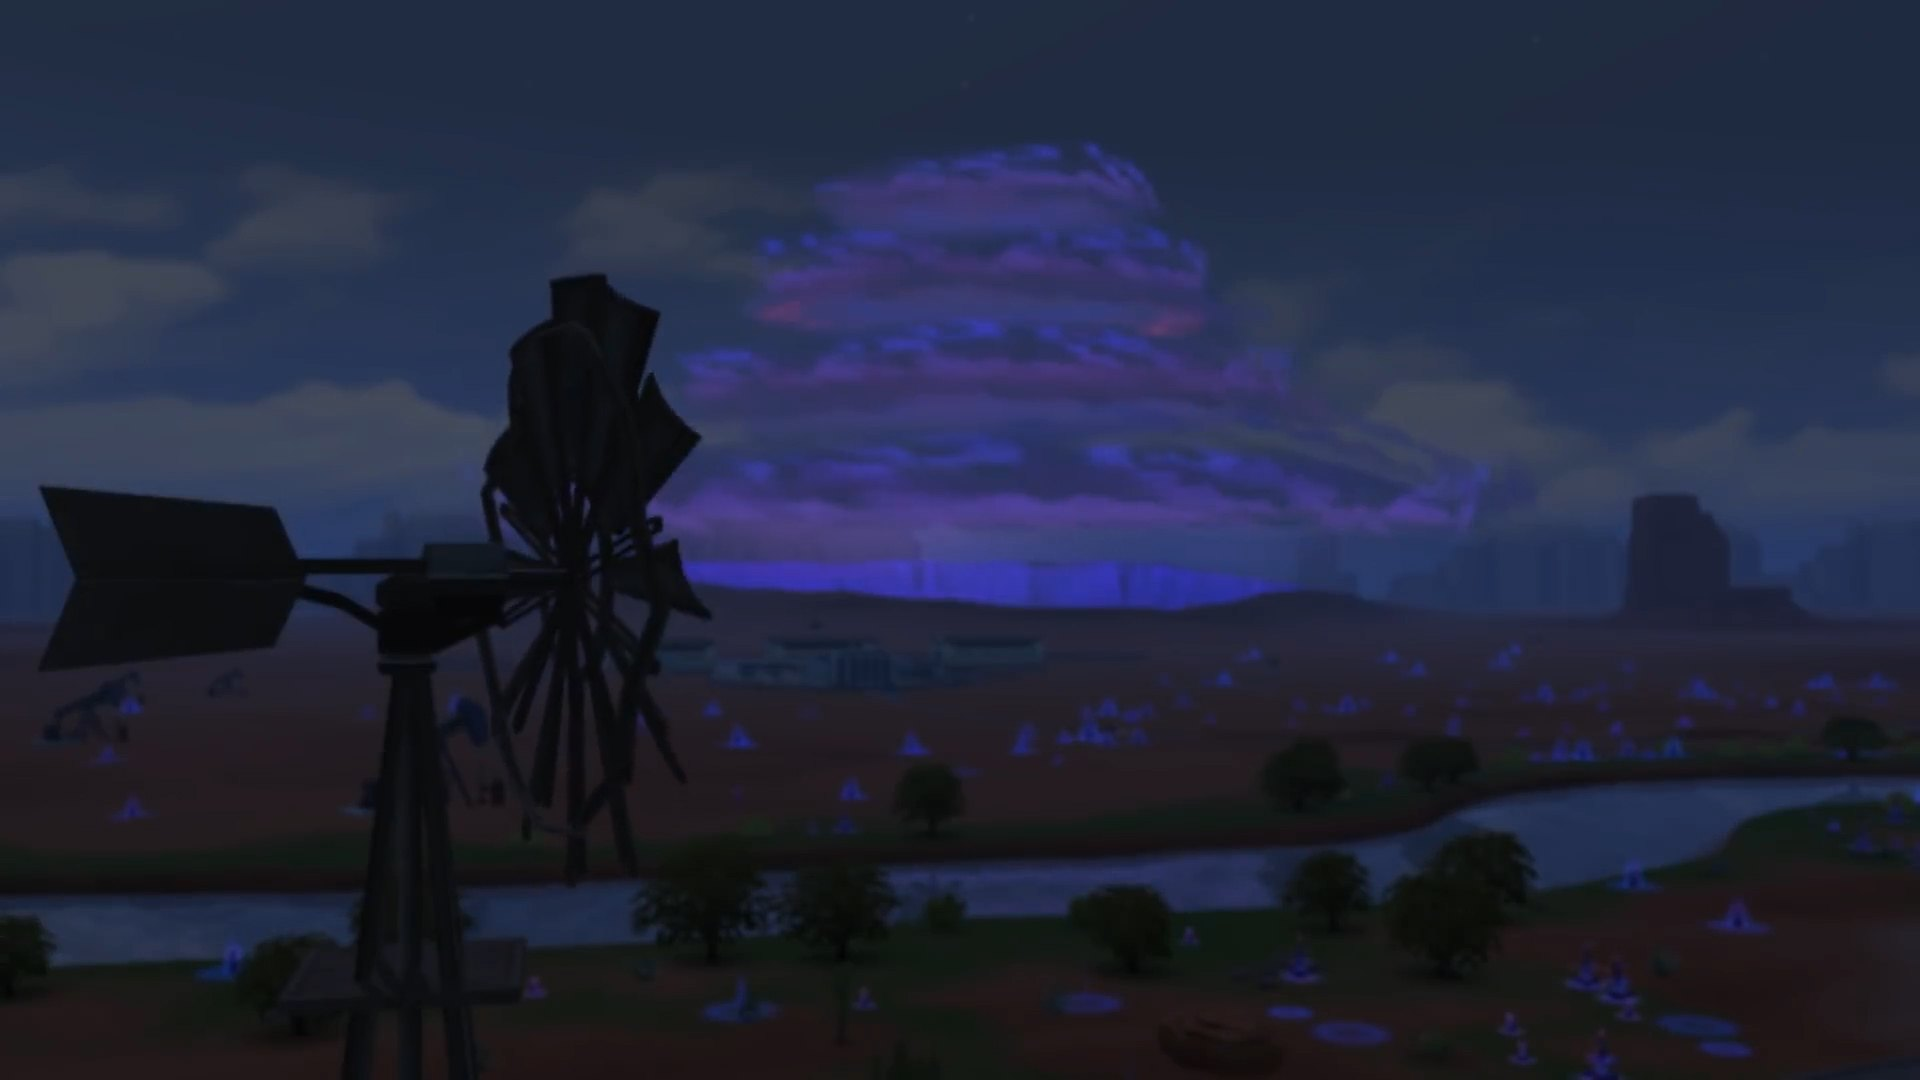 The Sims 4 Strangerville - Storm over the whole town